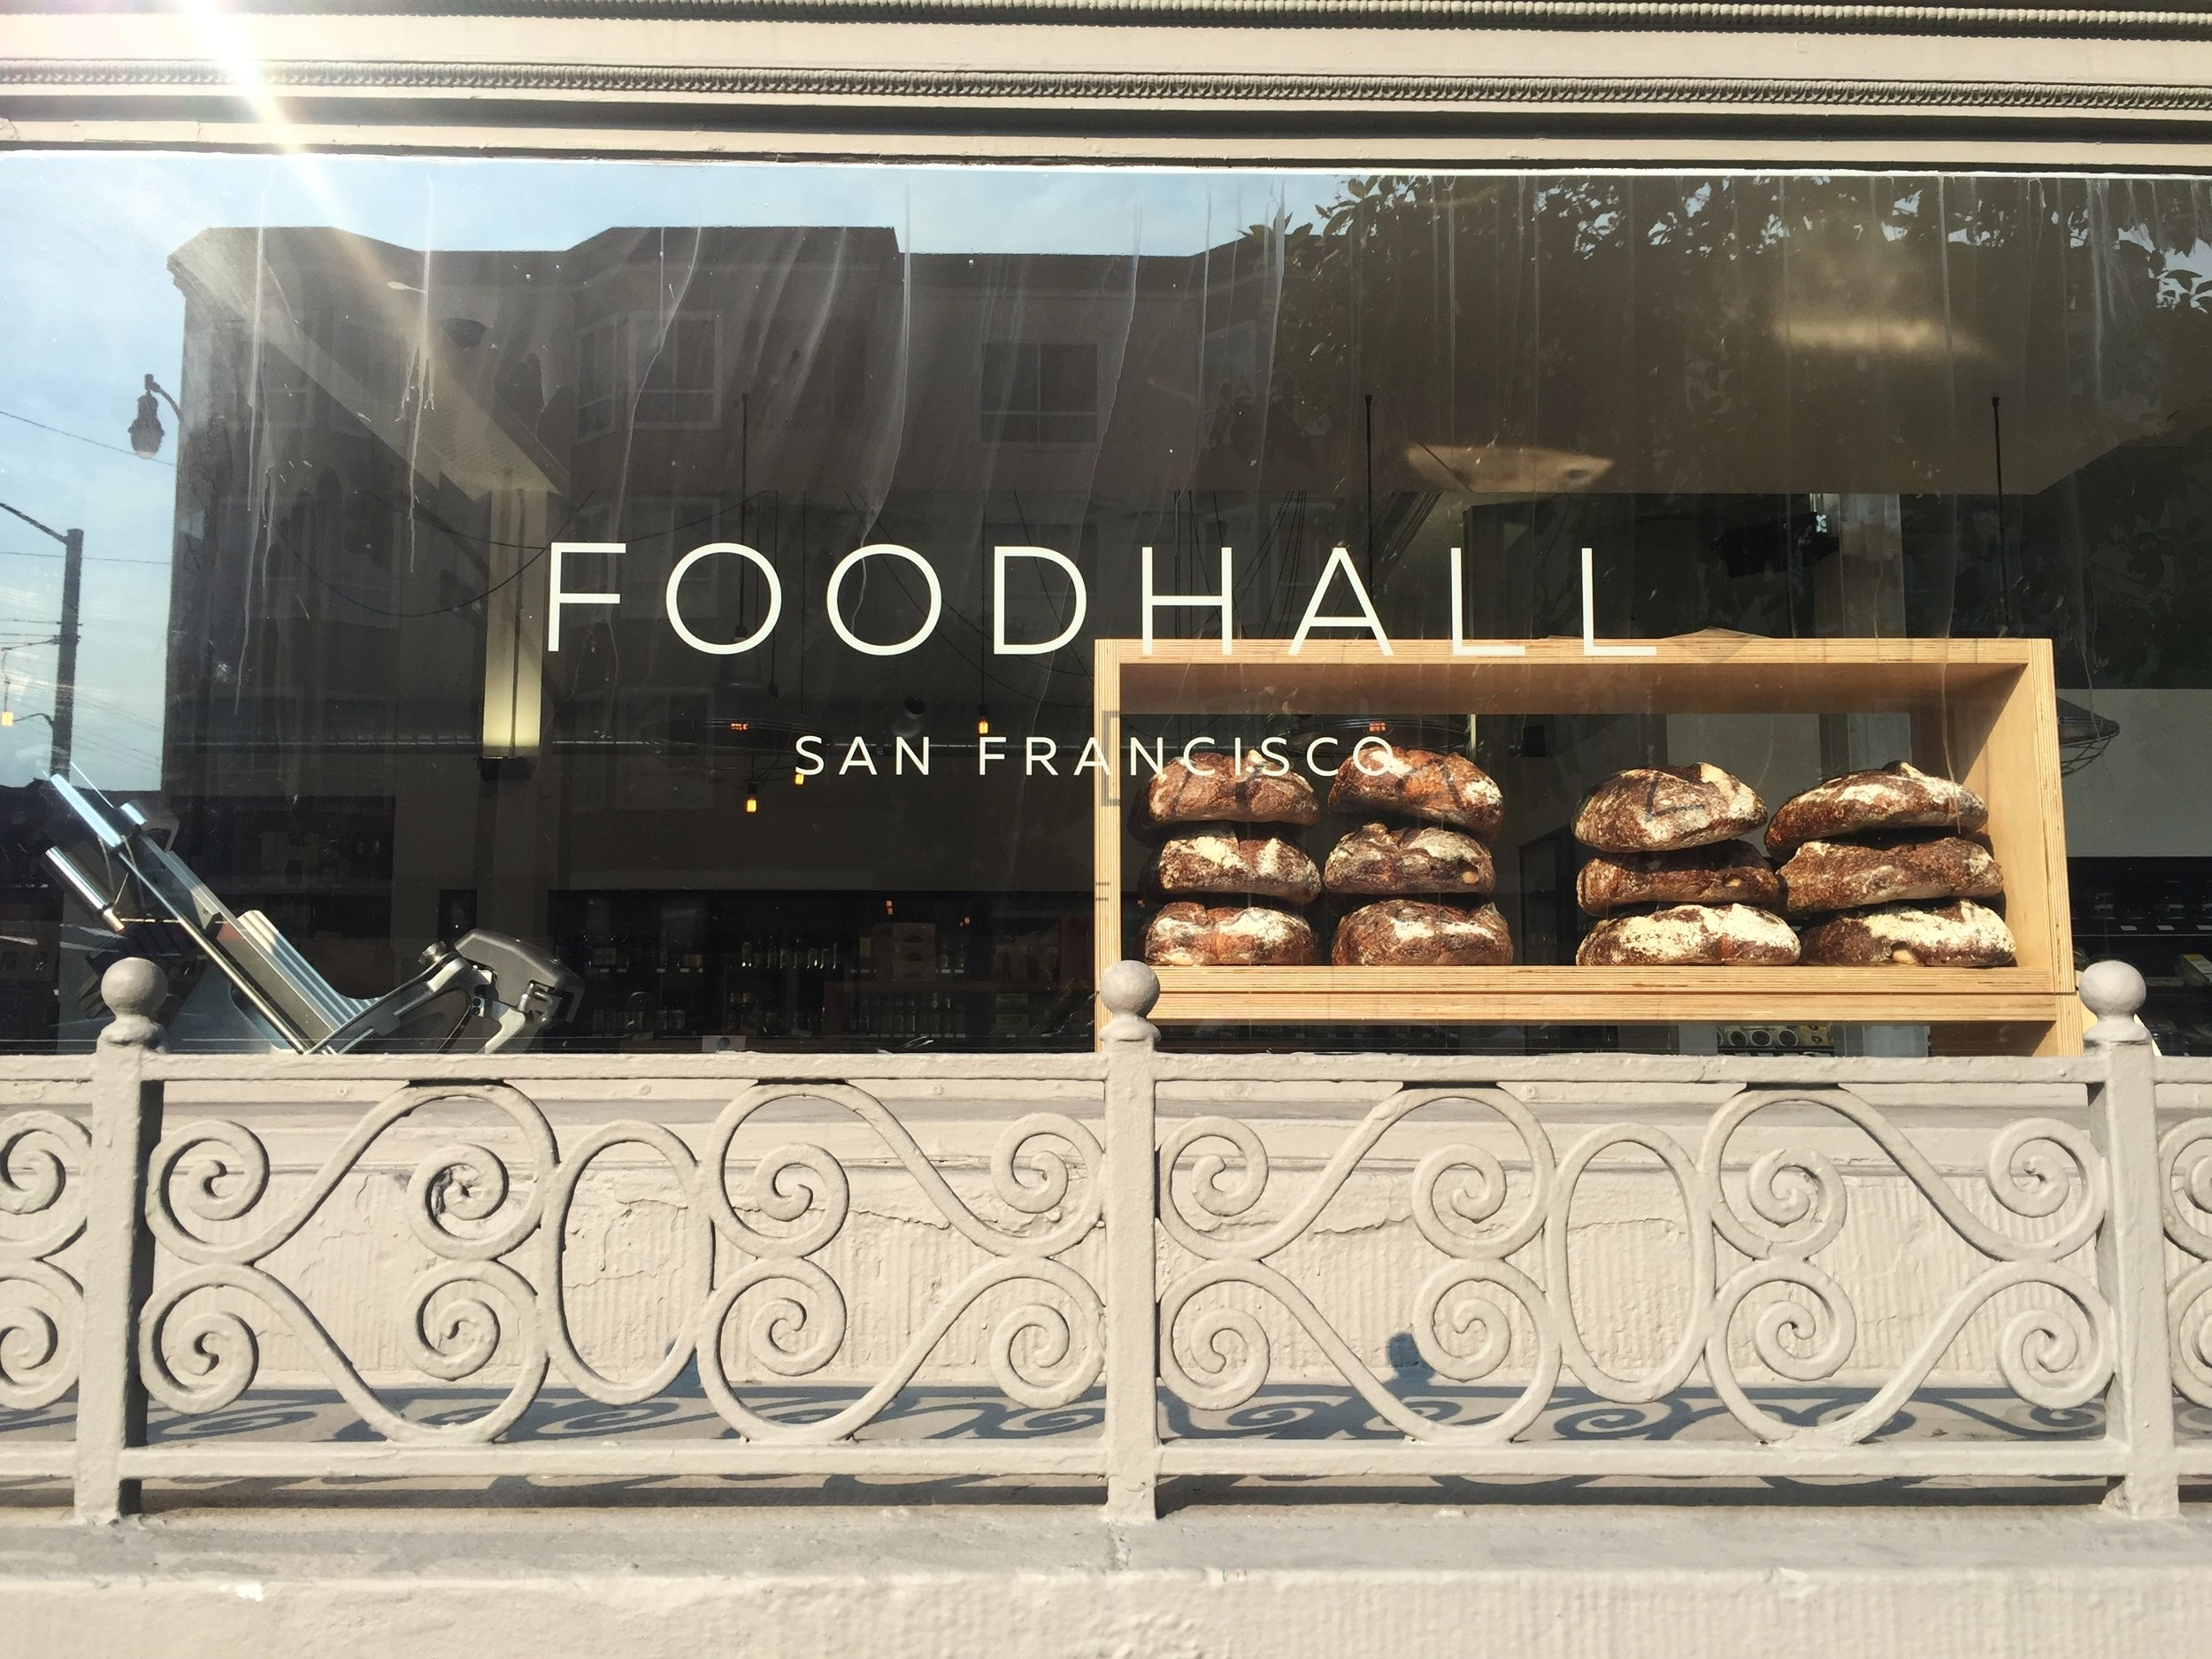 sanfrancisco,foodhall,foodhallsanfrancisco,bakery